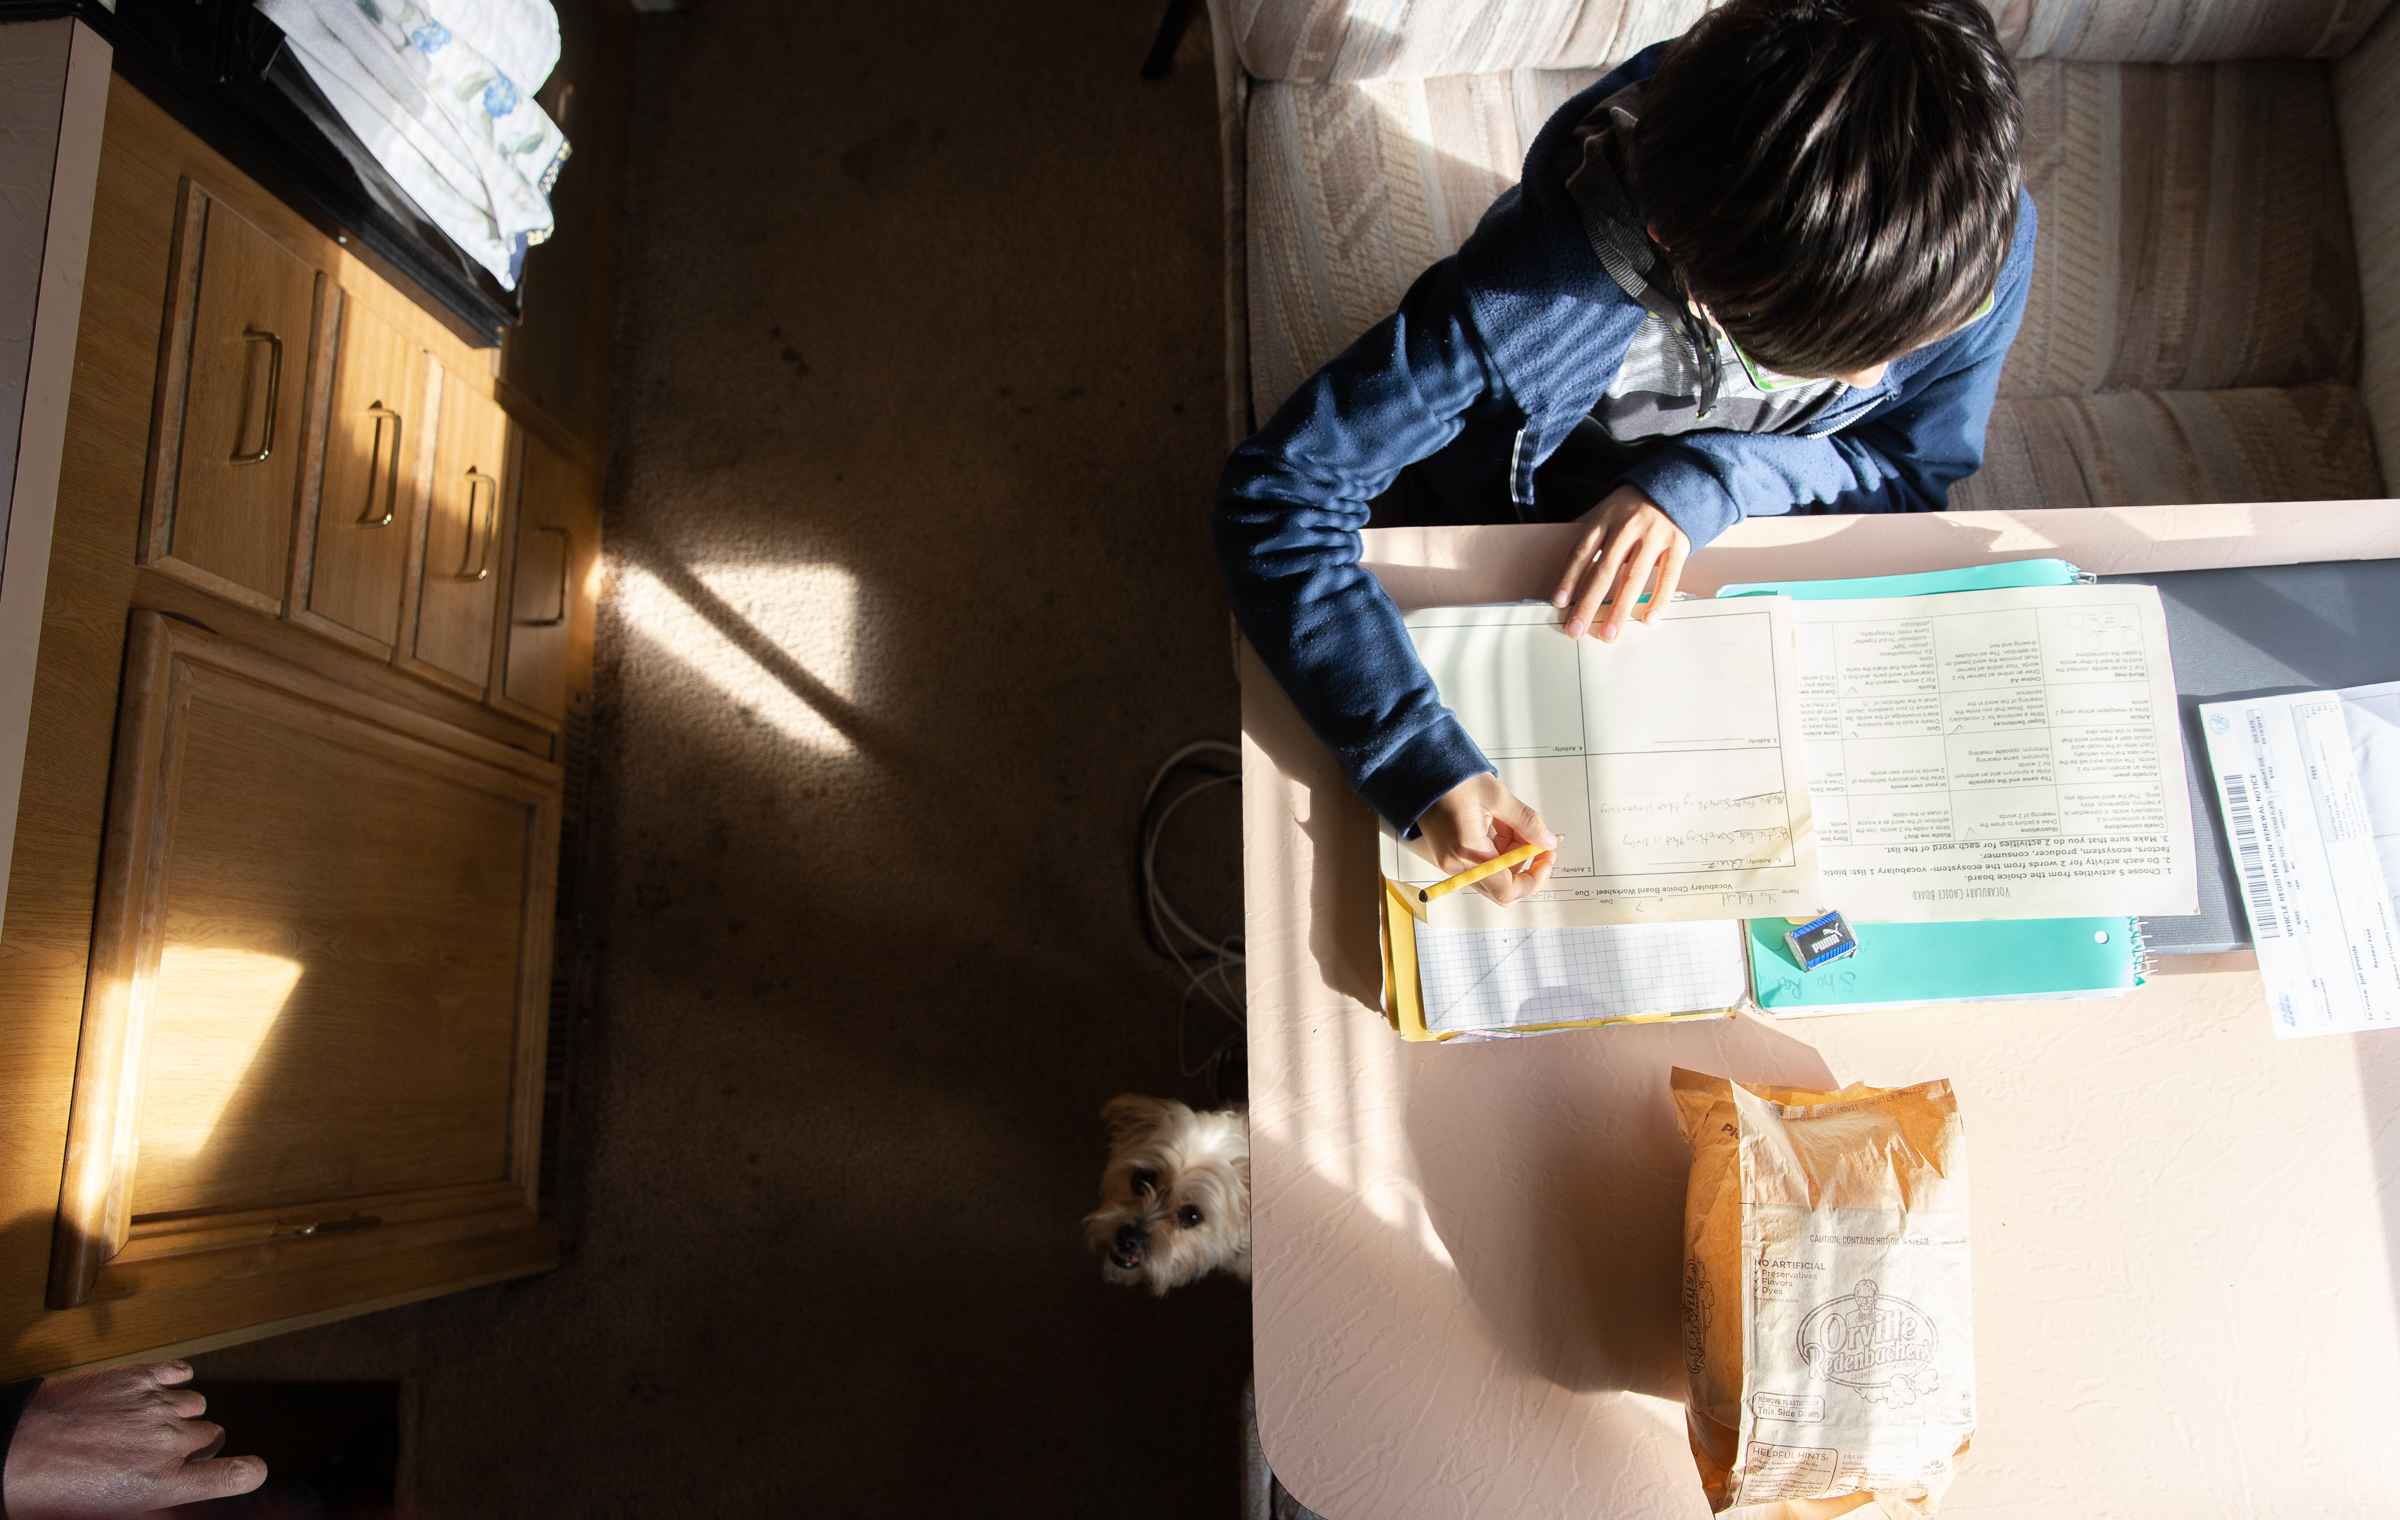 Scott Rodvold's son does his homework at a pull-out table in their RV in Mountain View, California, March 8.